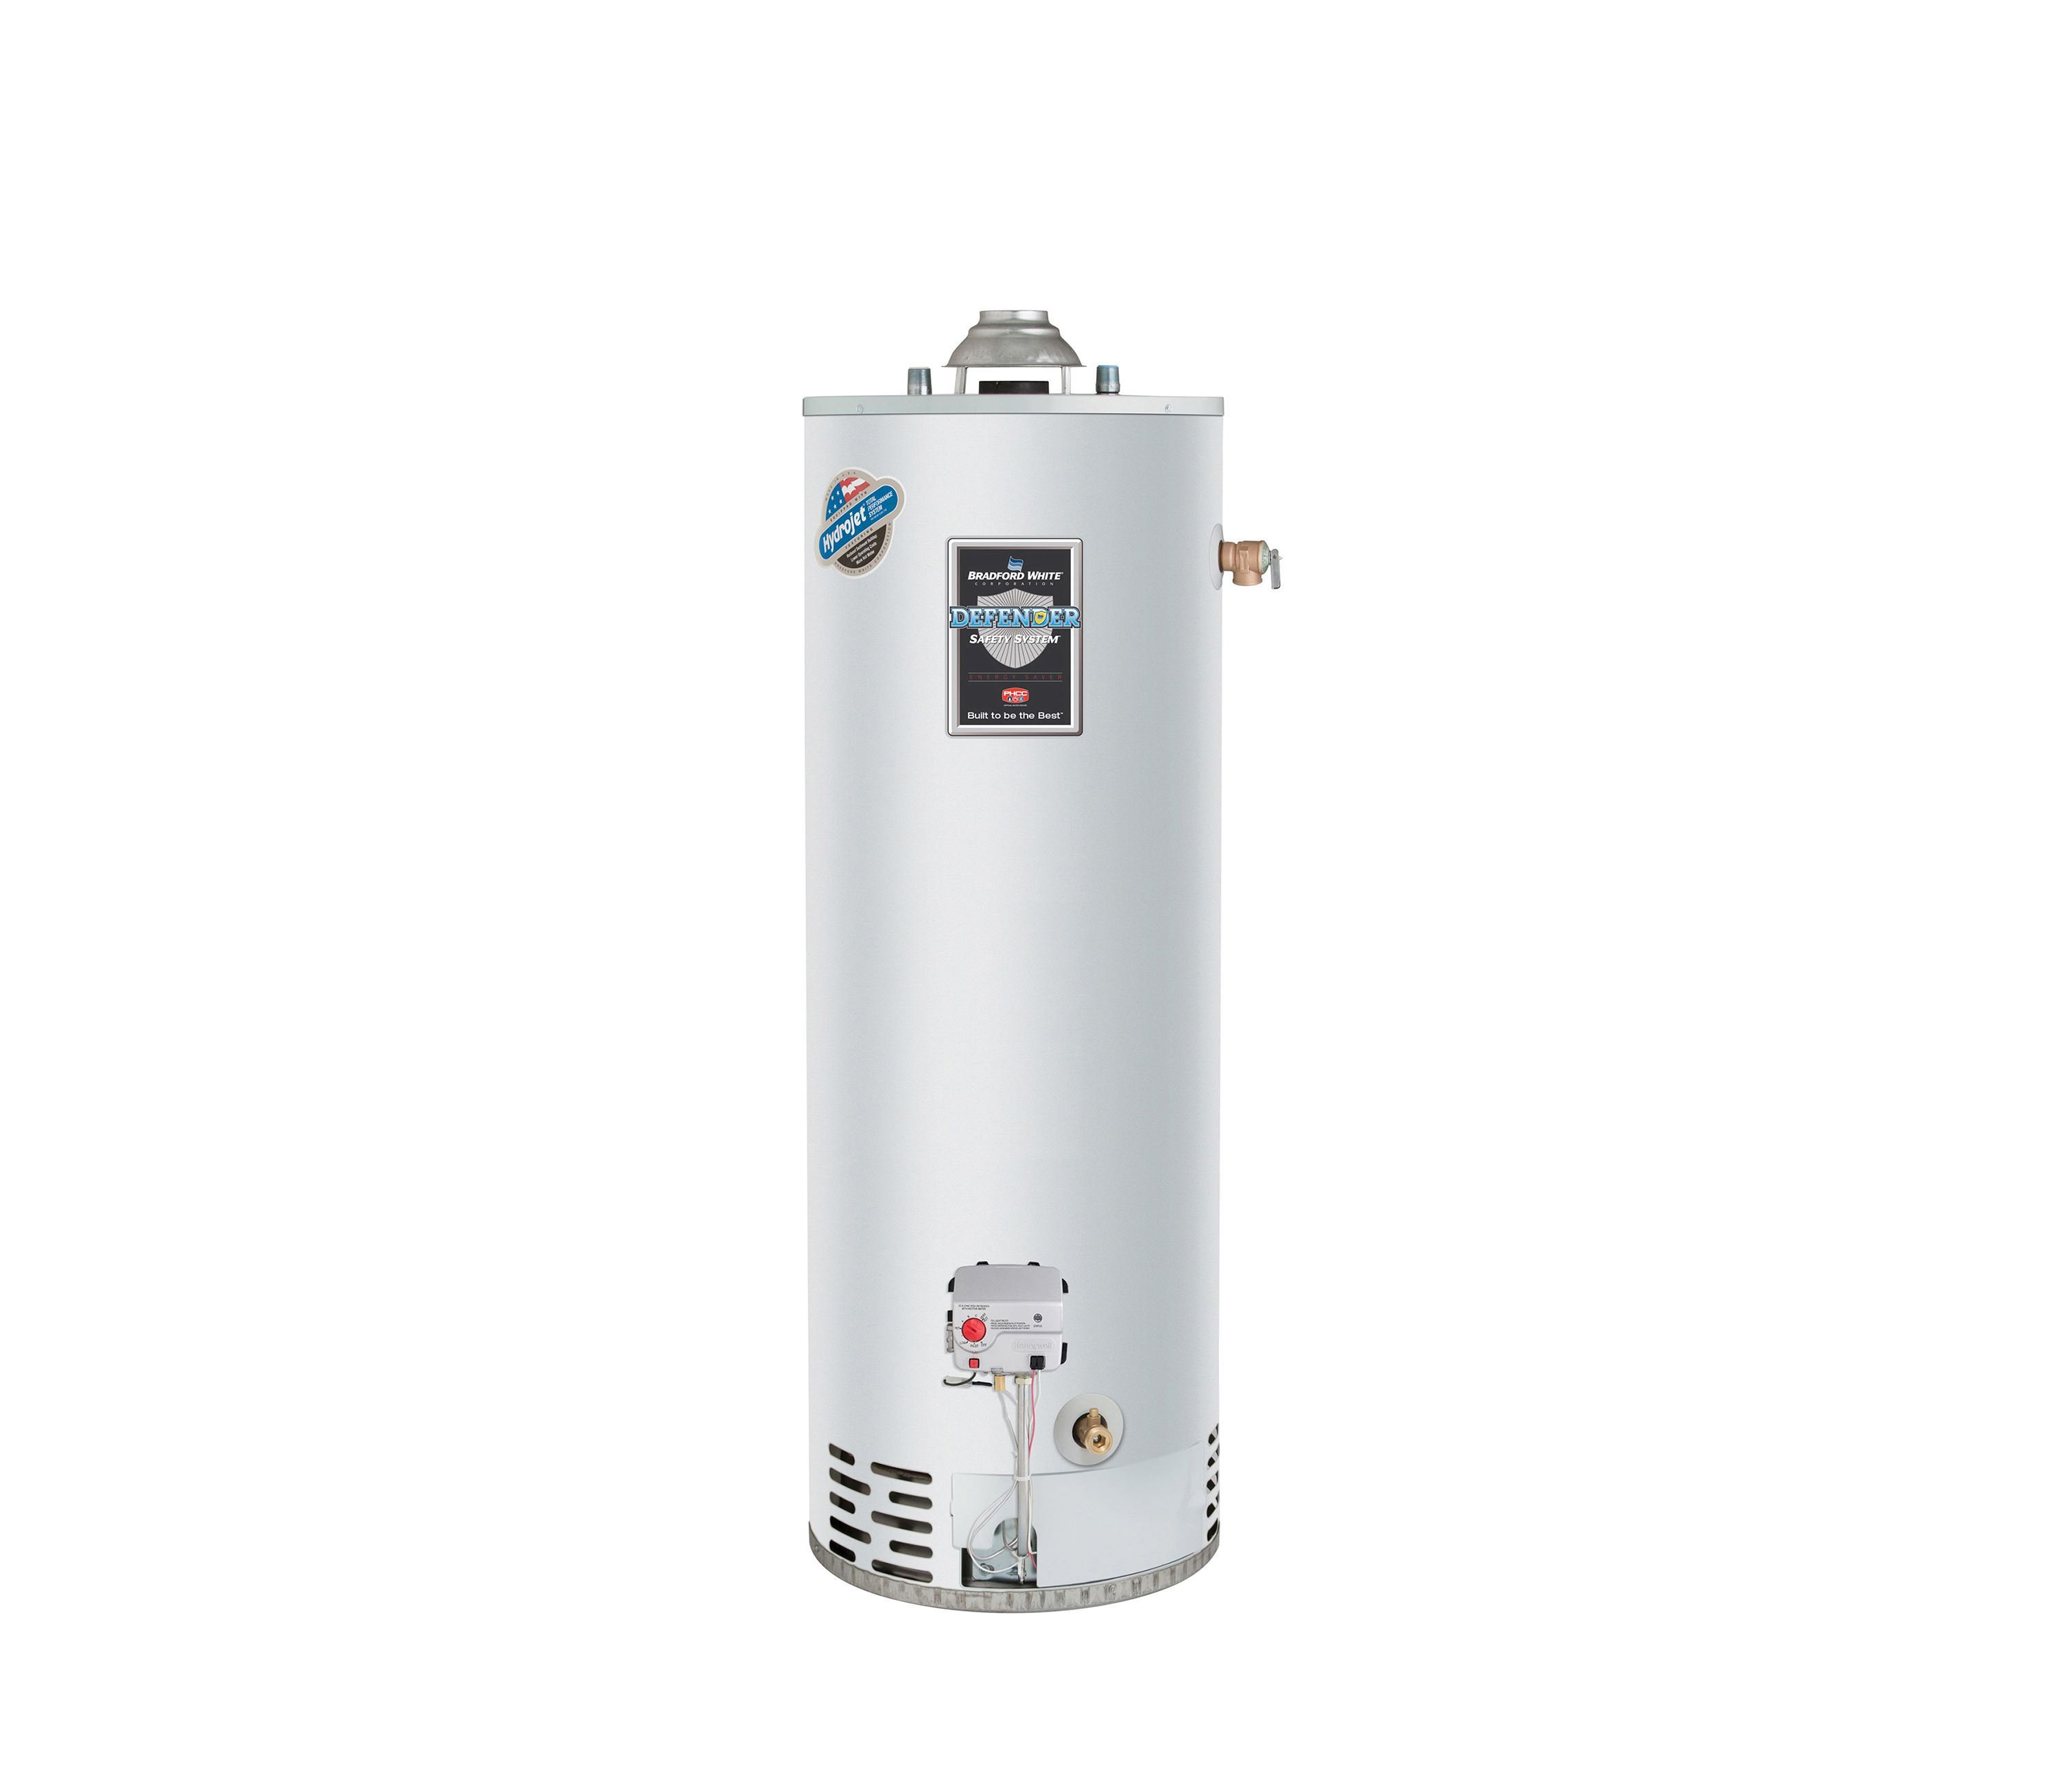 Bradford White RG250T6N 50 Gal Natural Gas Atmospheric Vent Energy Saver Water Heater, 40K BTU